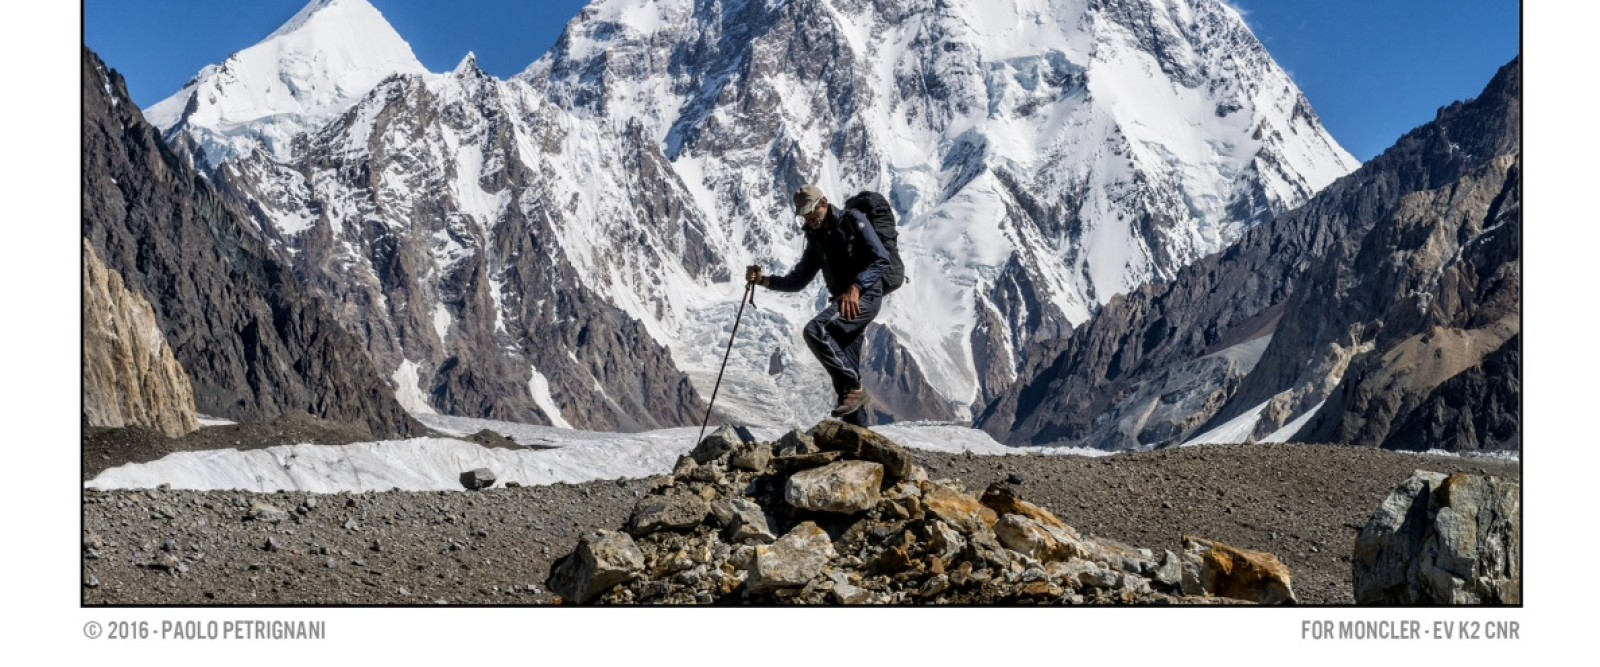 MOUNTAINS, ENERGY FOR THE PLANET: THE K2 REGION